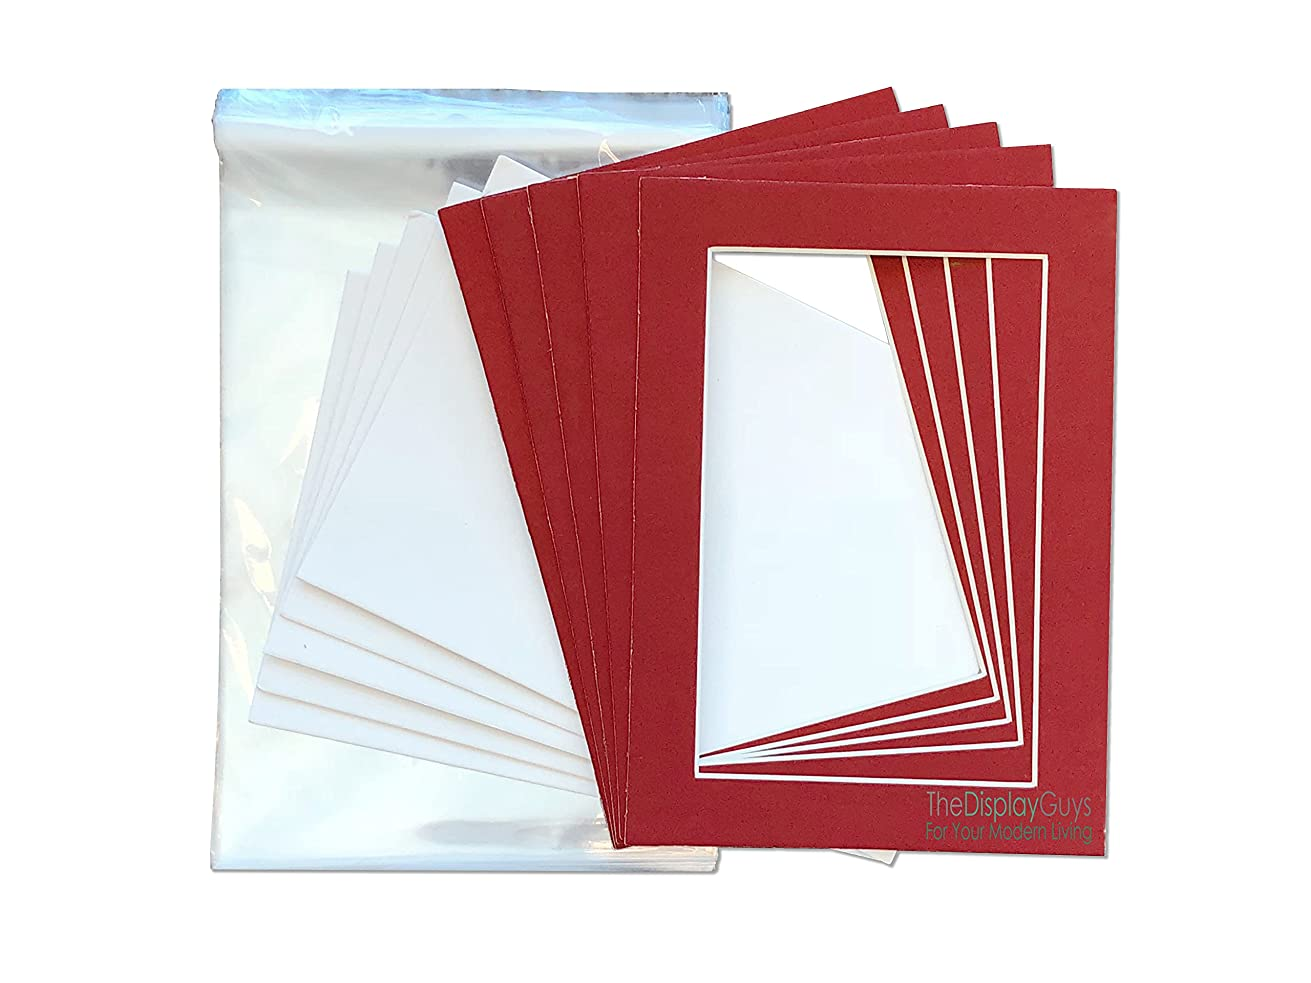 The Display Guys Pack of 25 Red Picture Photo Matting Mat Boards (White Core Bevel Cut) + Backing Boards + Clear Plastic Bags (25pcs Complete Set) (5